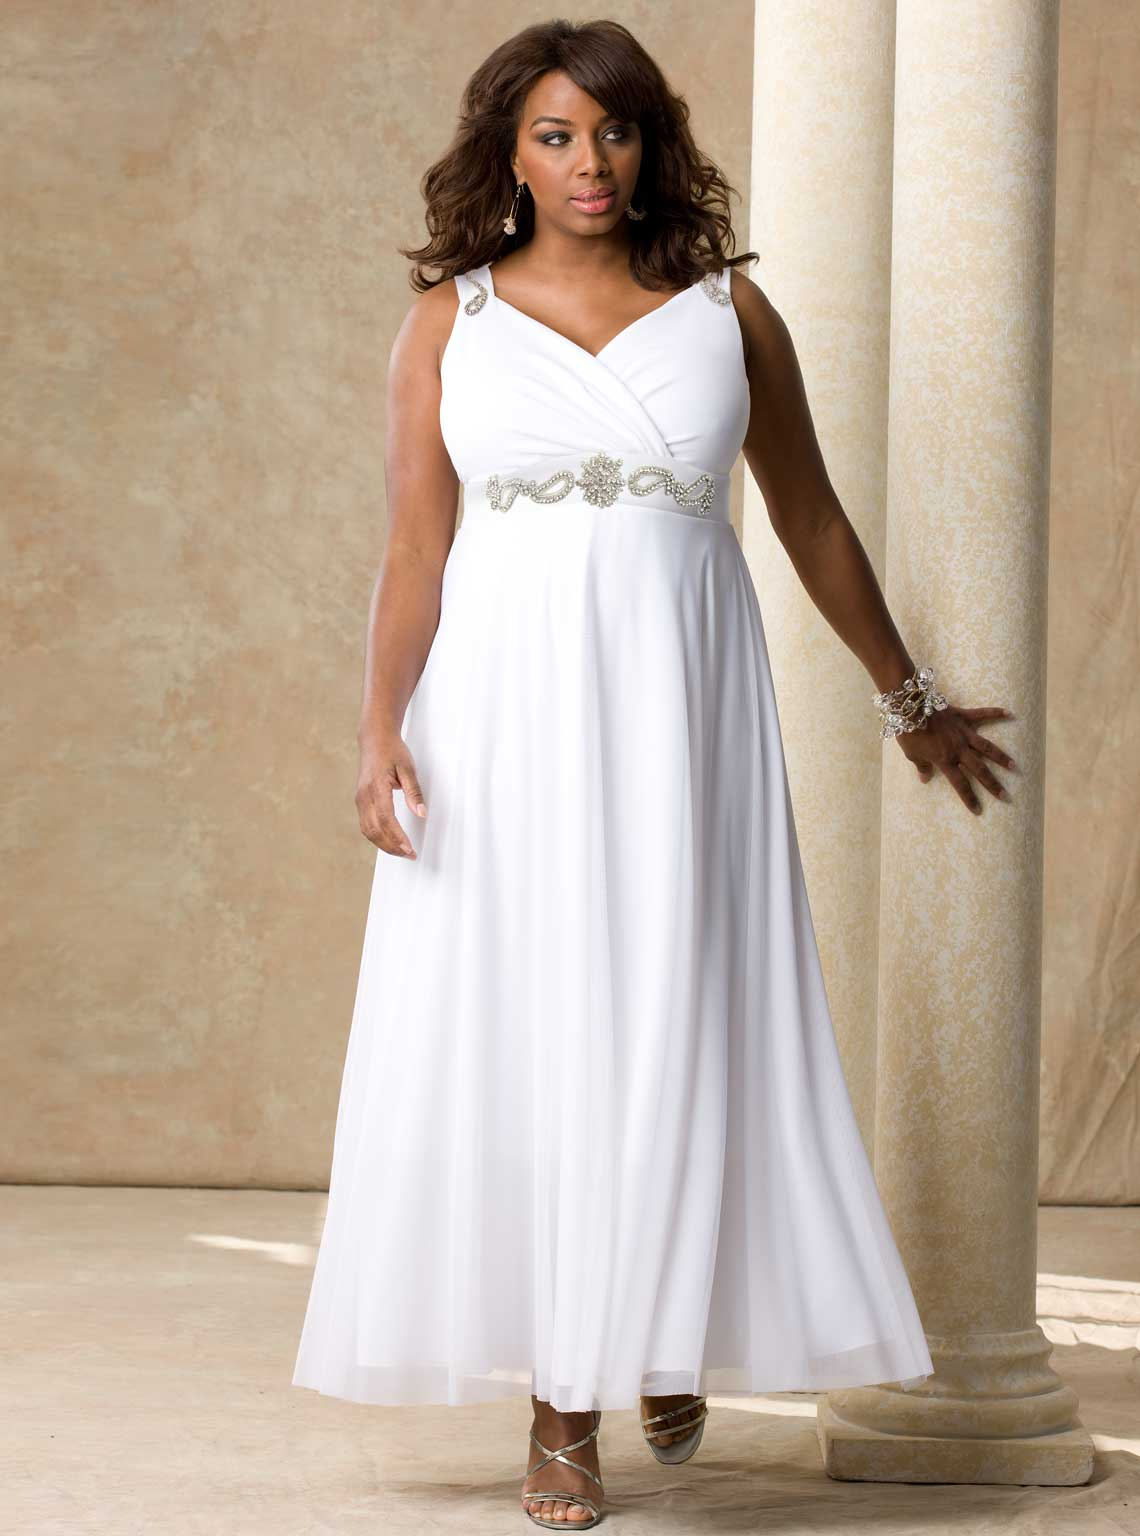 best wedding ideas searching for an affordable plus size With wedding plus size dresses